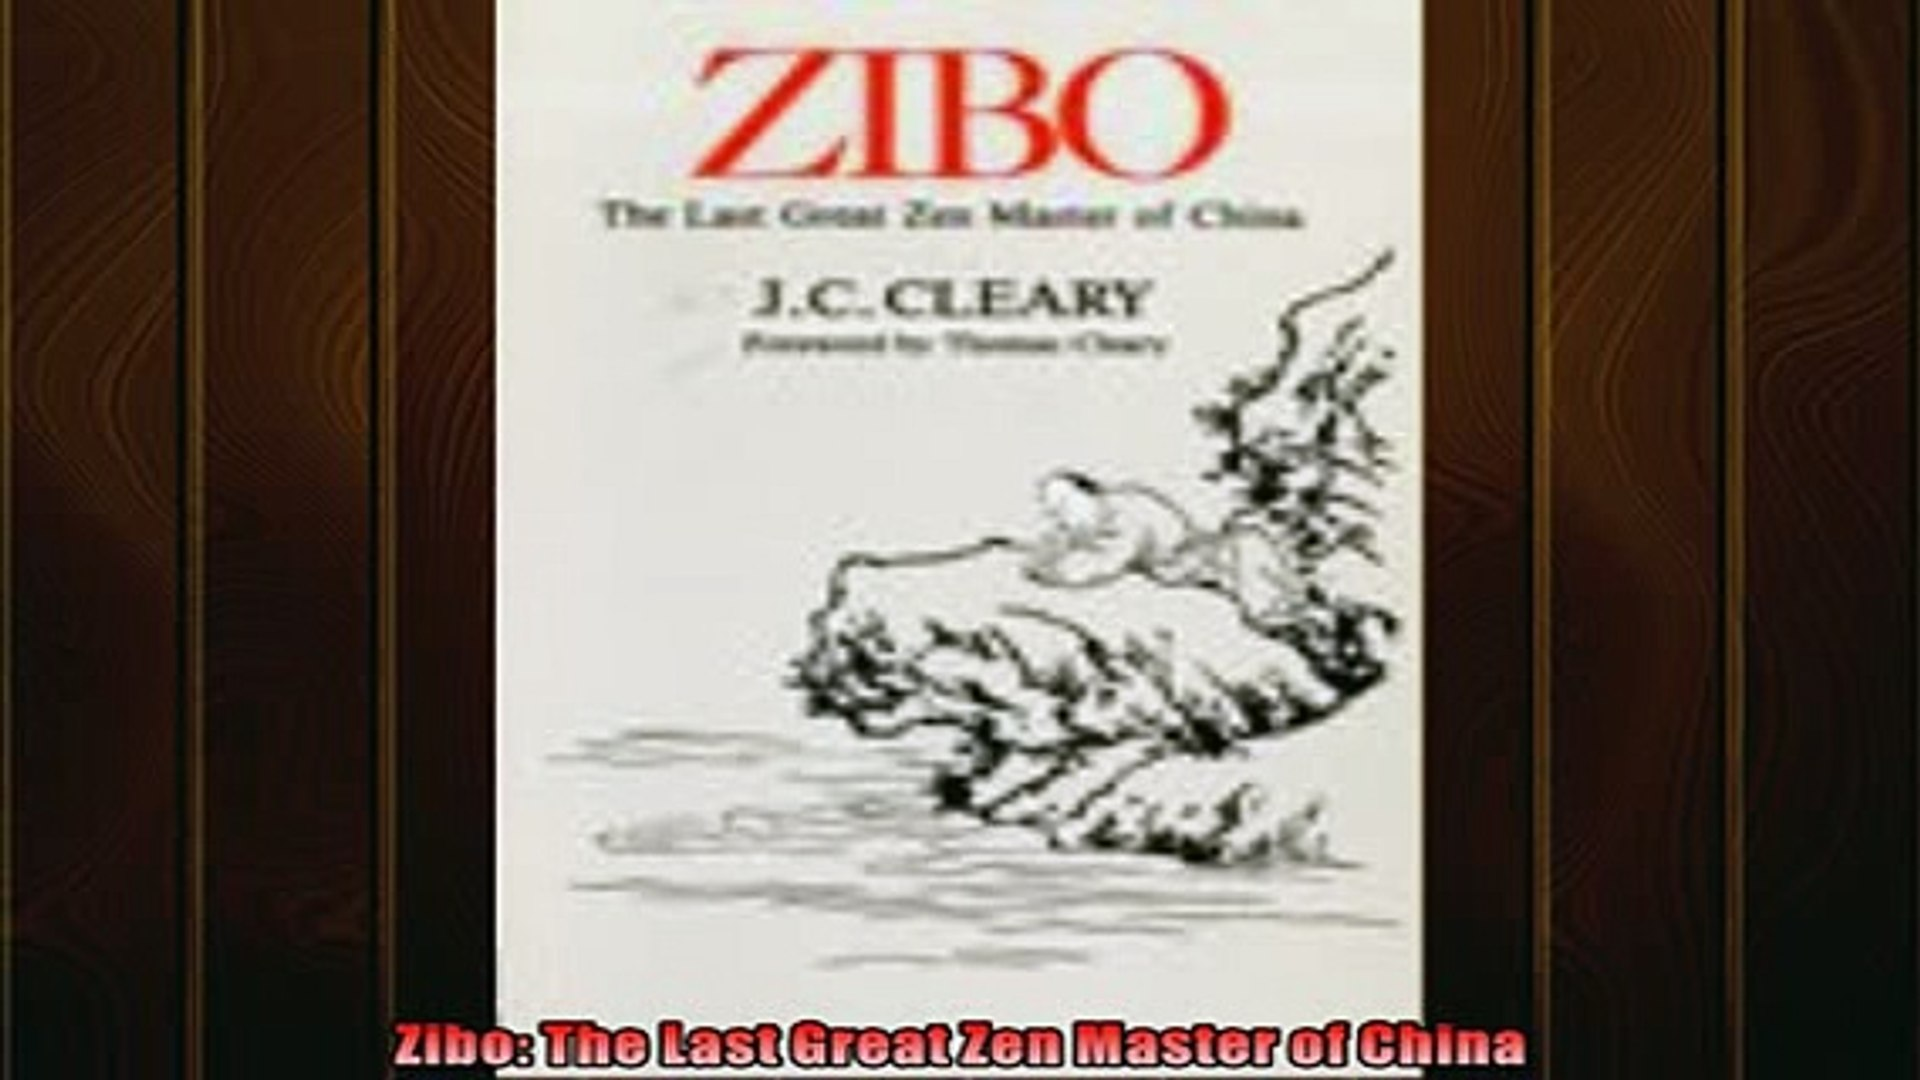 For you  Zibo The Last Great Zen Master of China